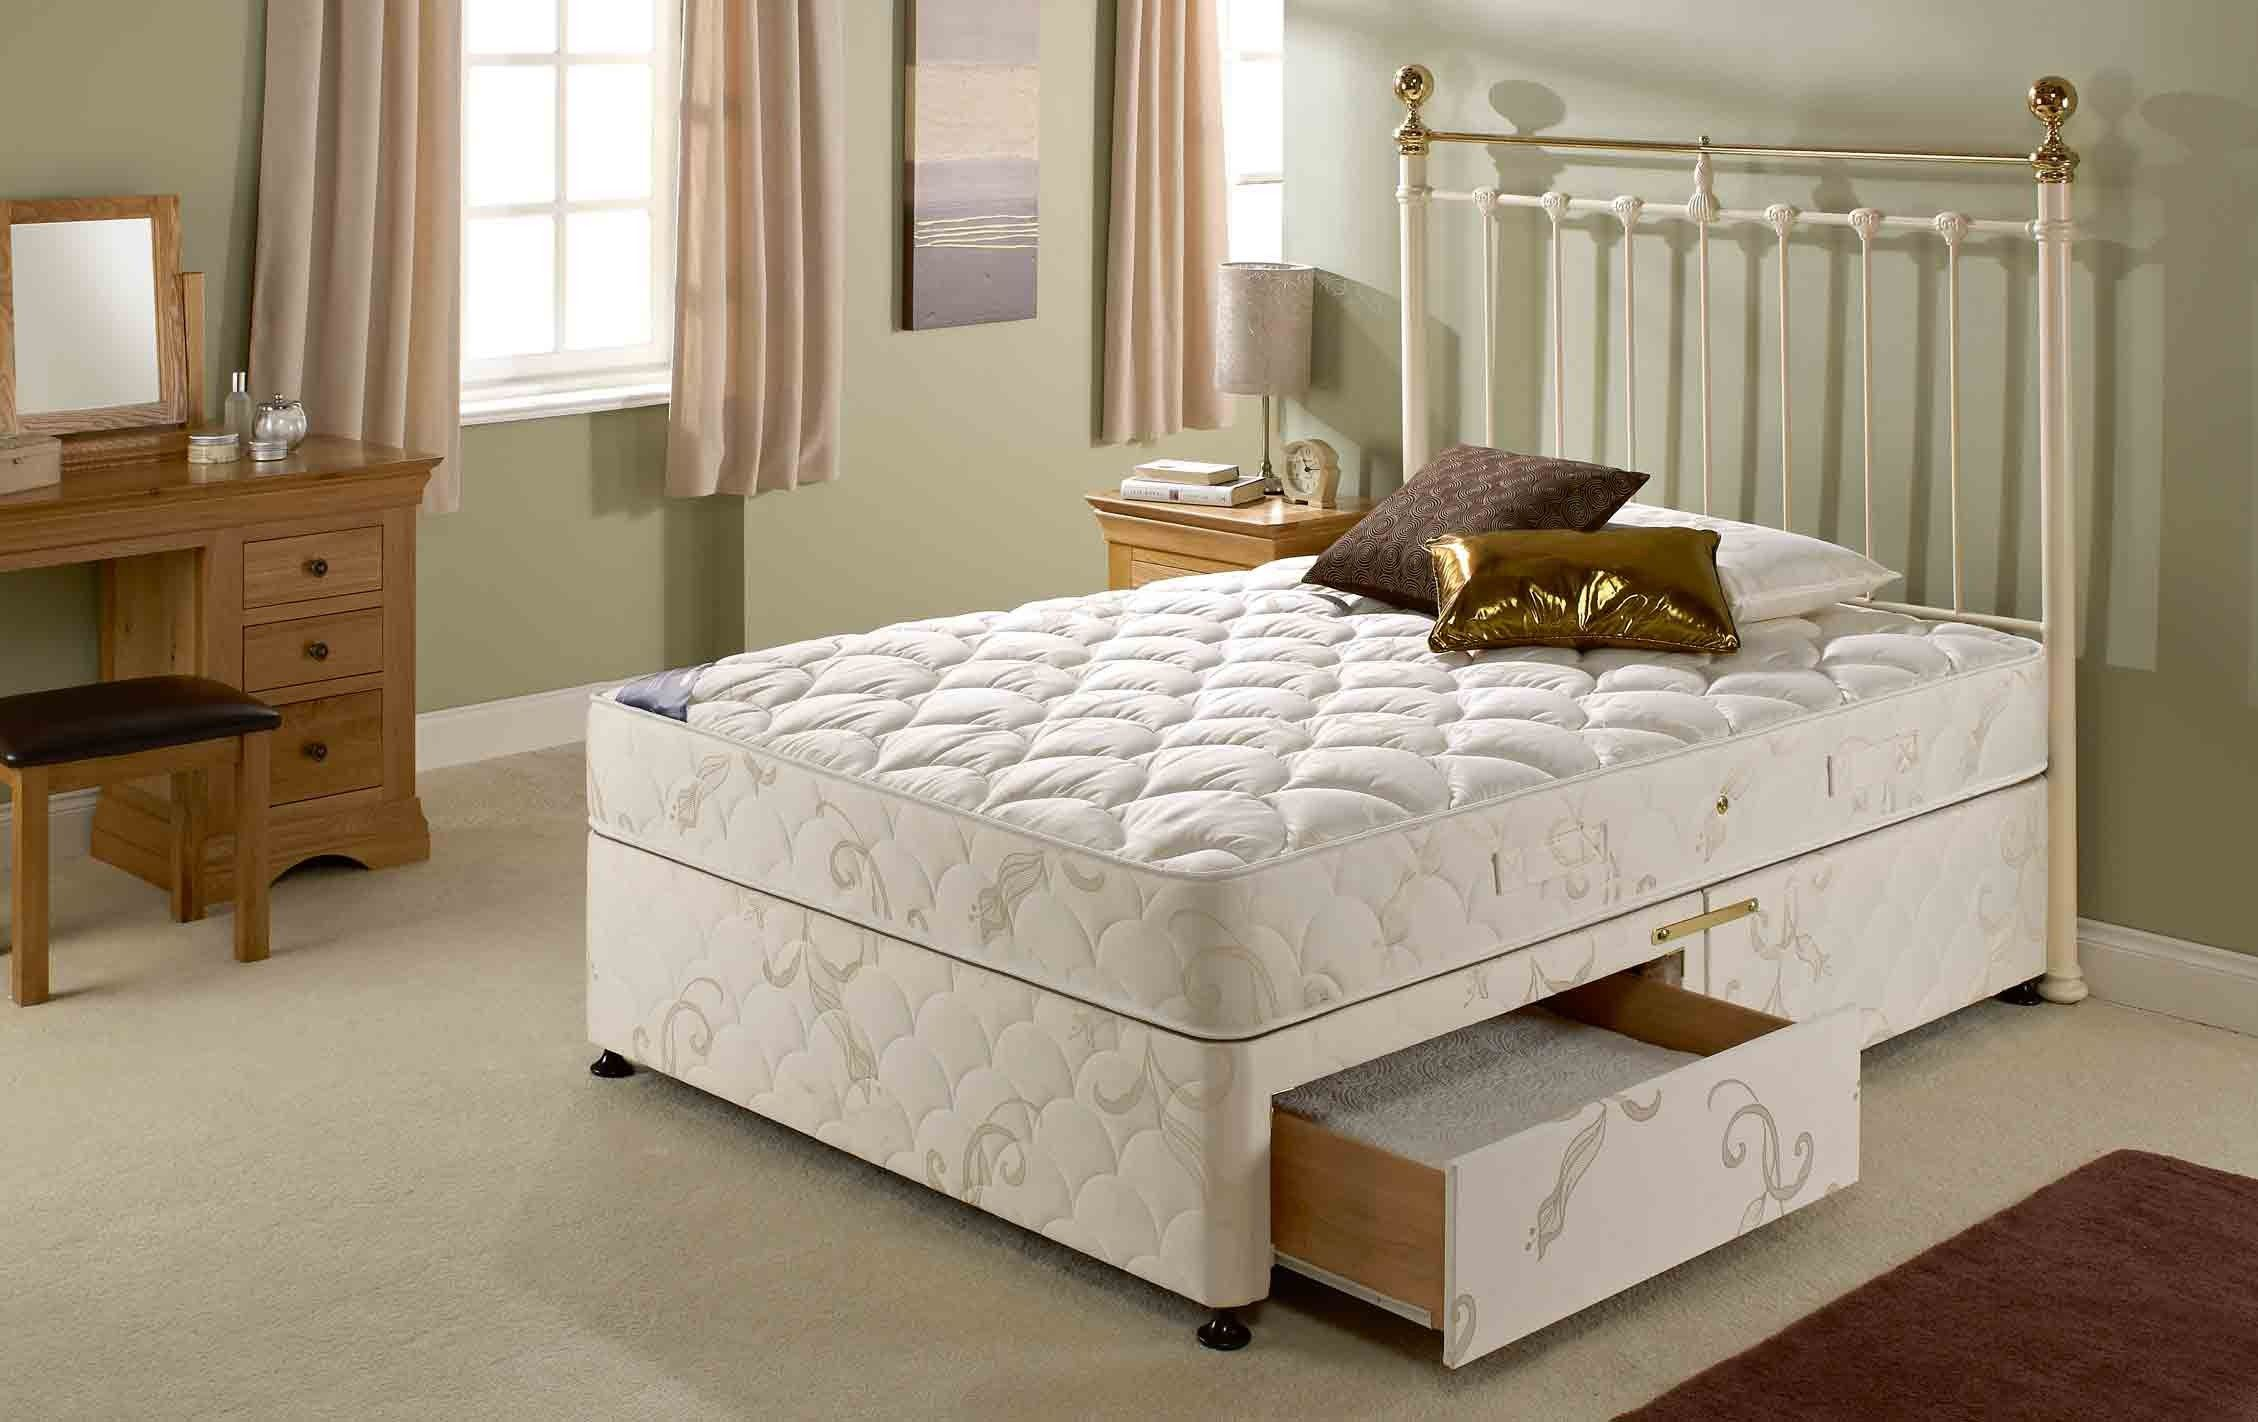 Topaz Divan Bed 2 Free Drawers Bed, Bed factory, Home